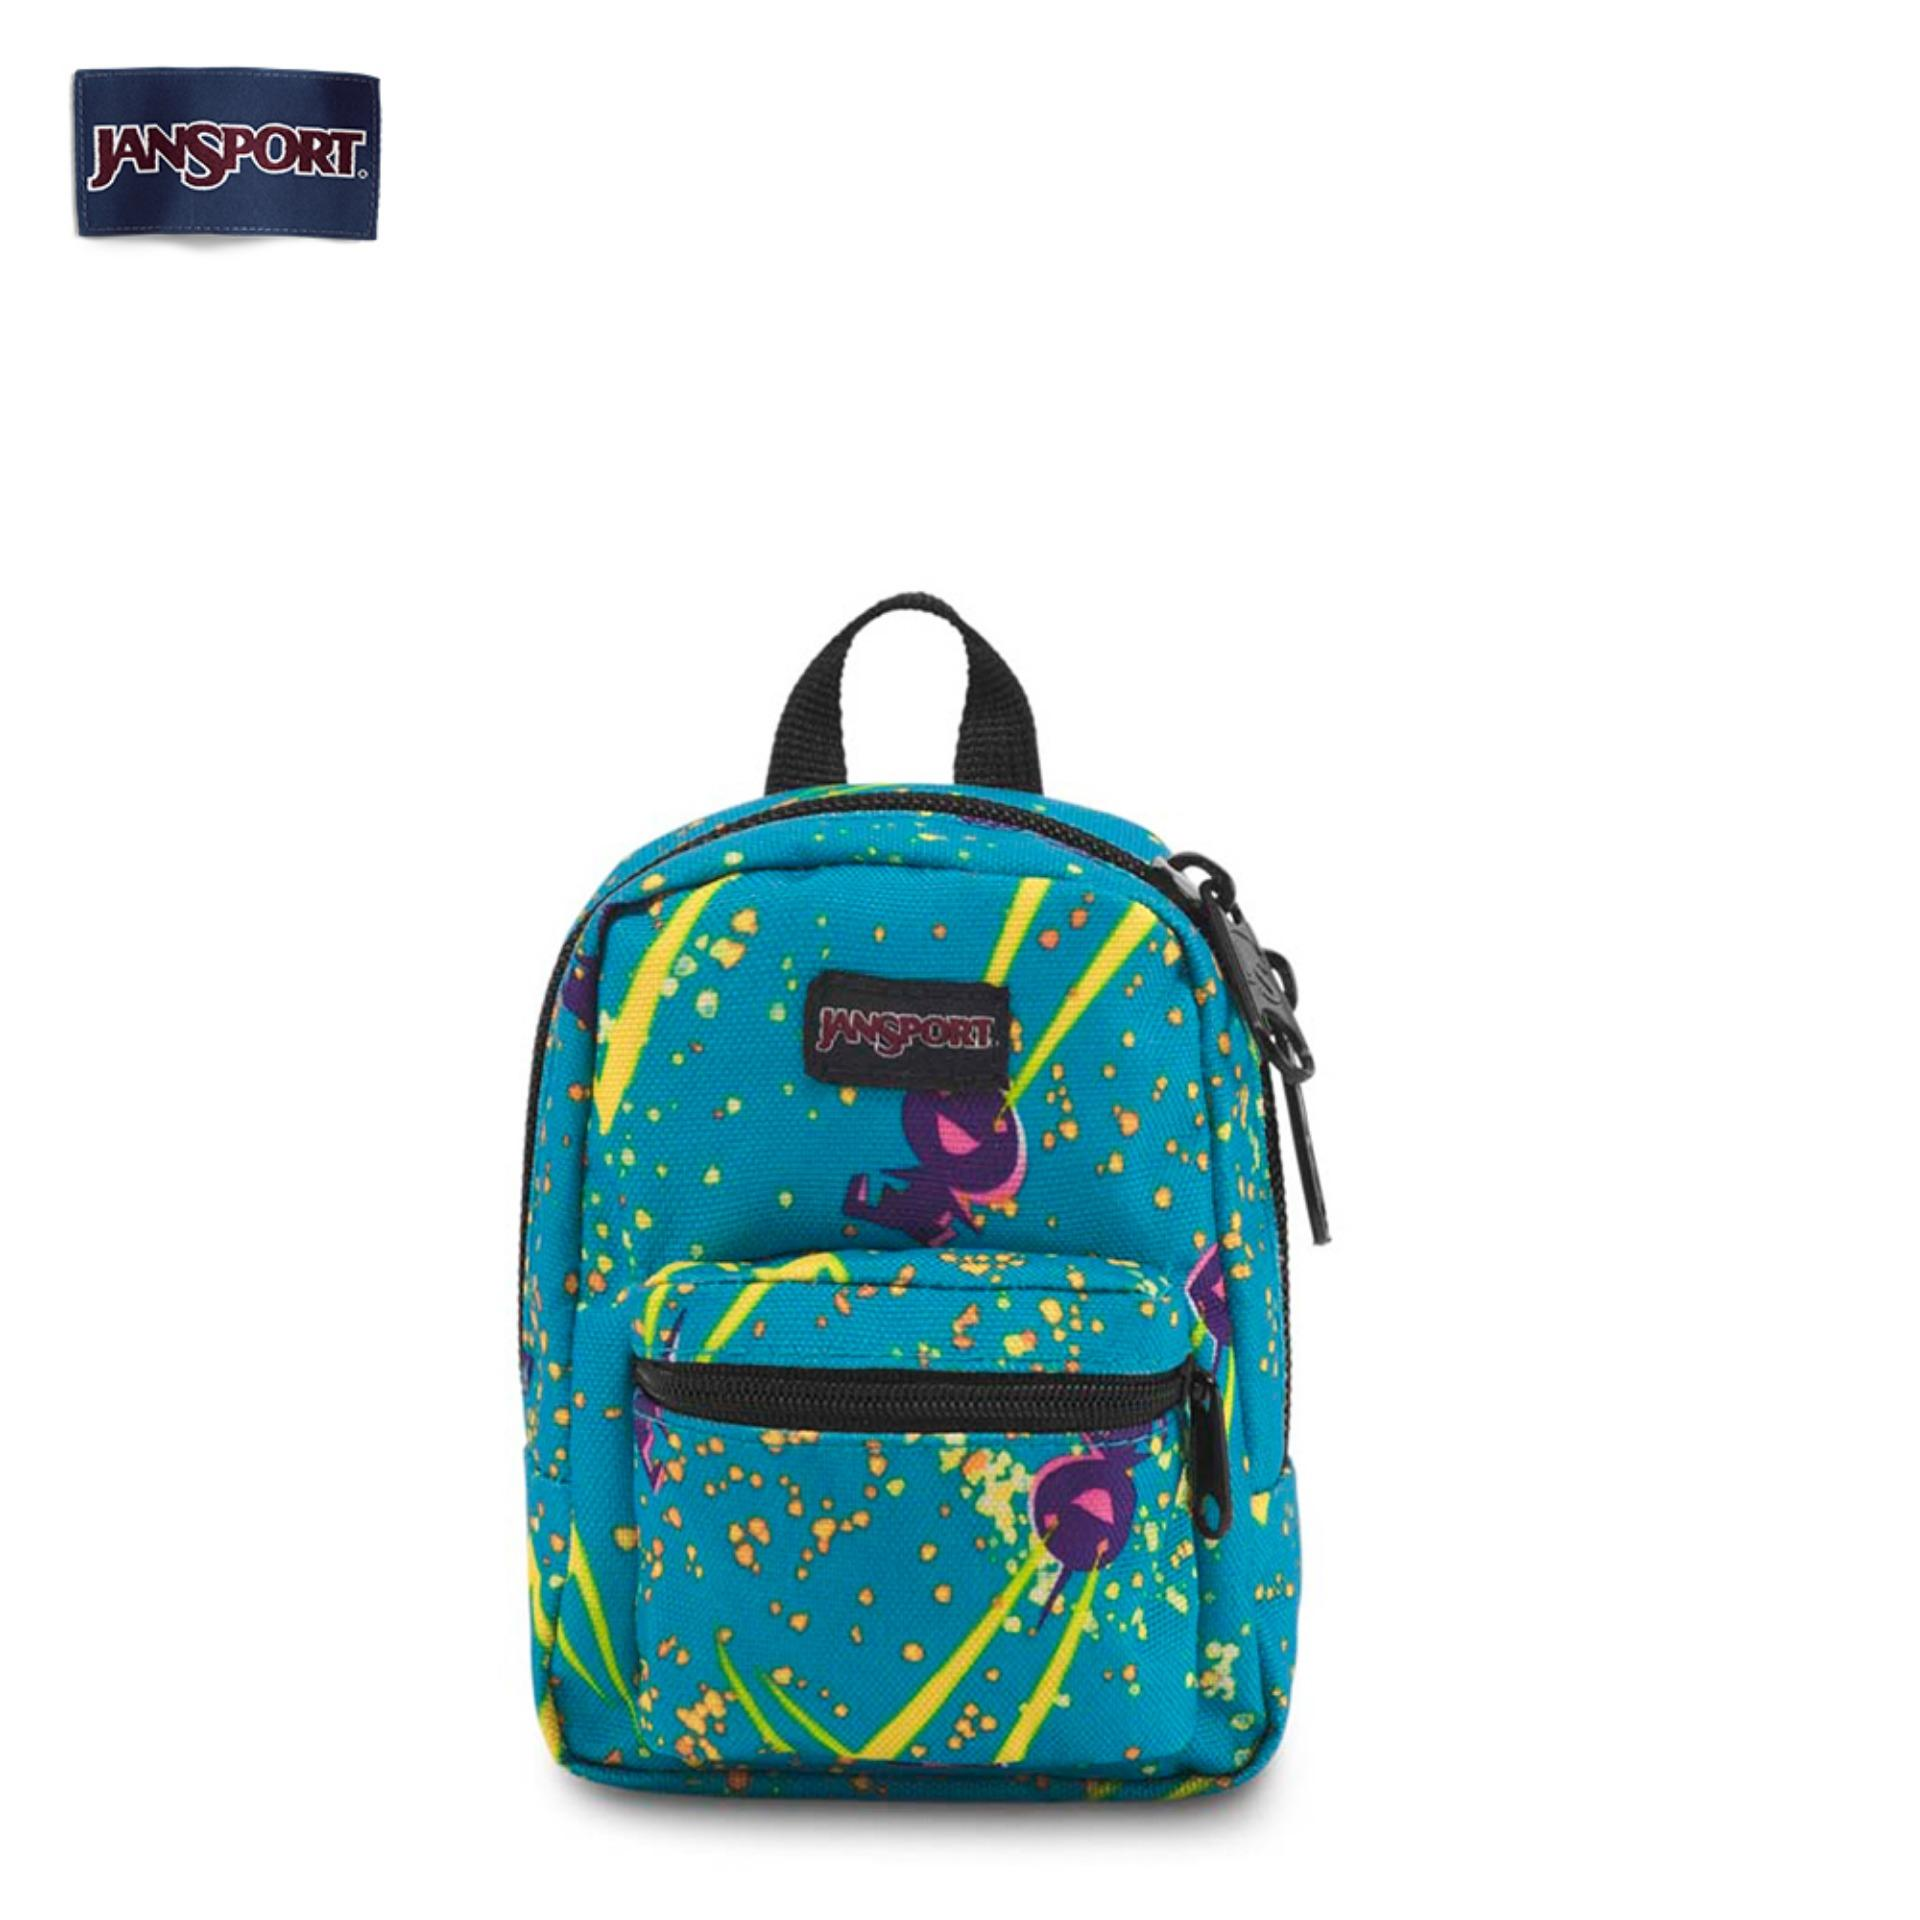 JanSport Philippines  JanSport price list - JanSport Bags ... a1dcbf95f397d